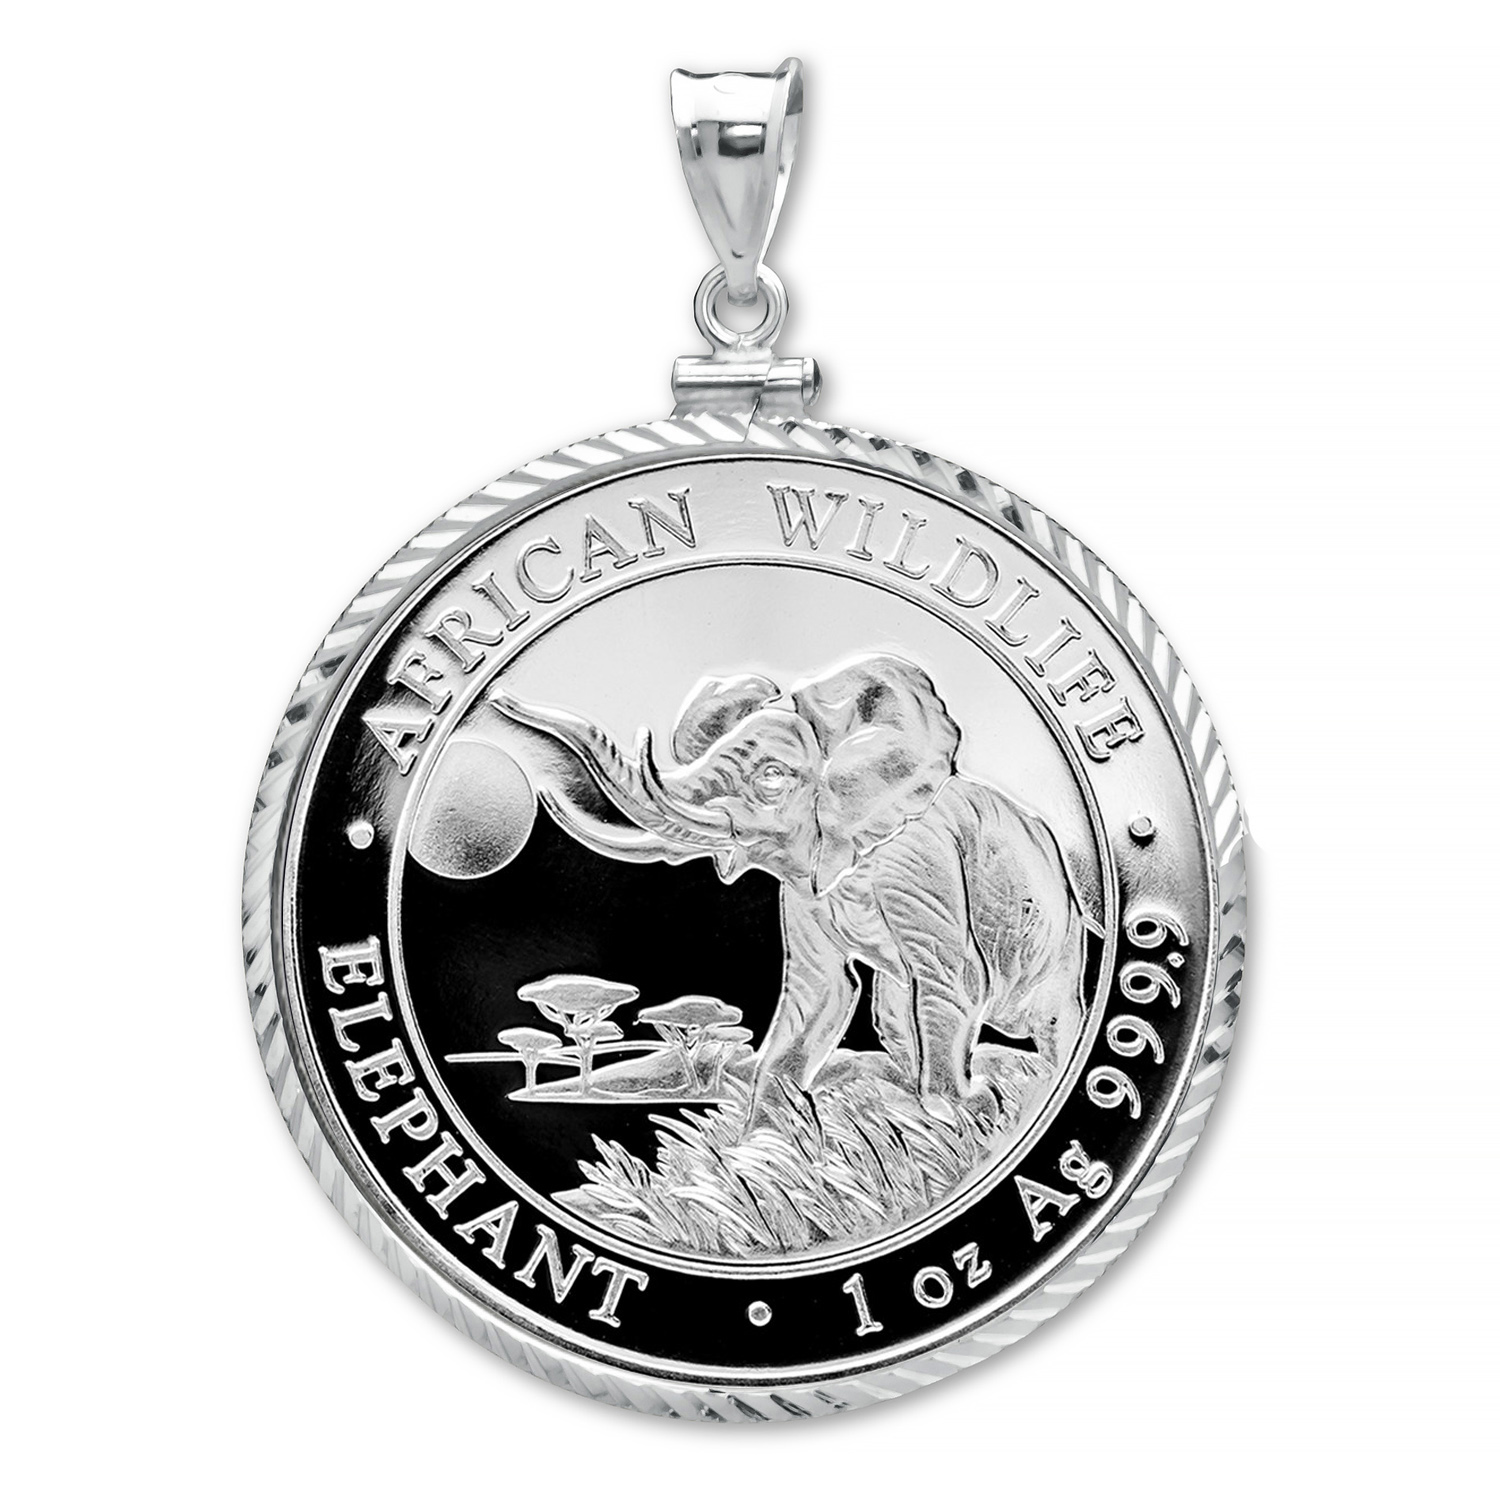 2016 Somalia 1 oz Silver Elephant Pendant (Diamond-Cut Screw-Top)